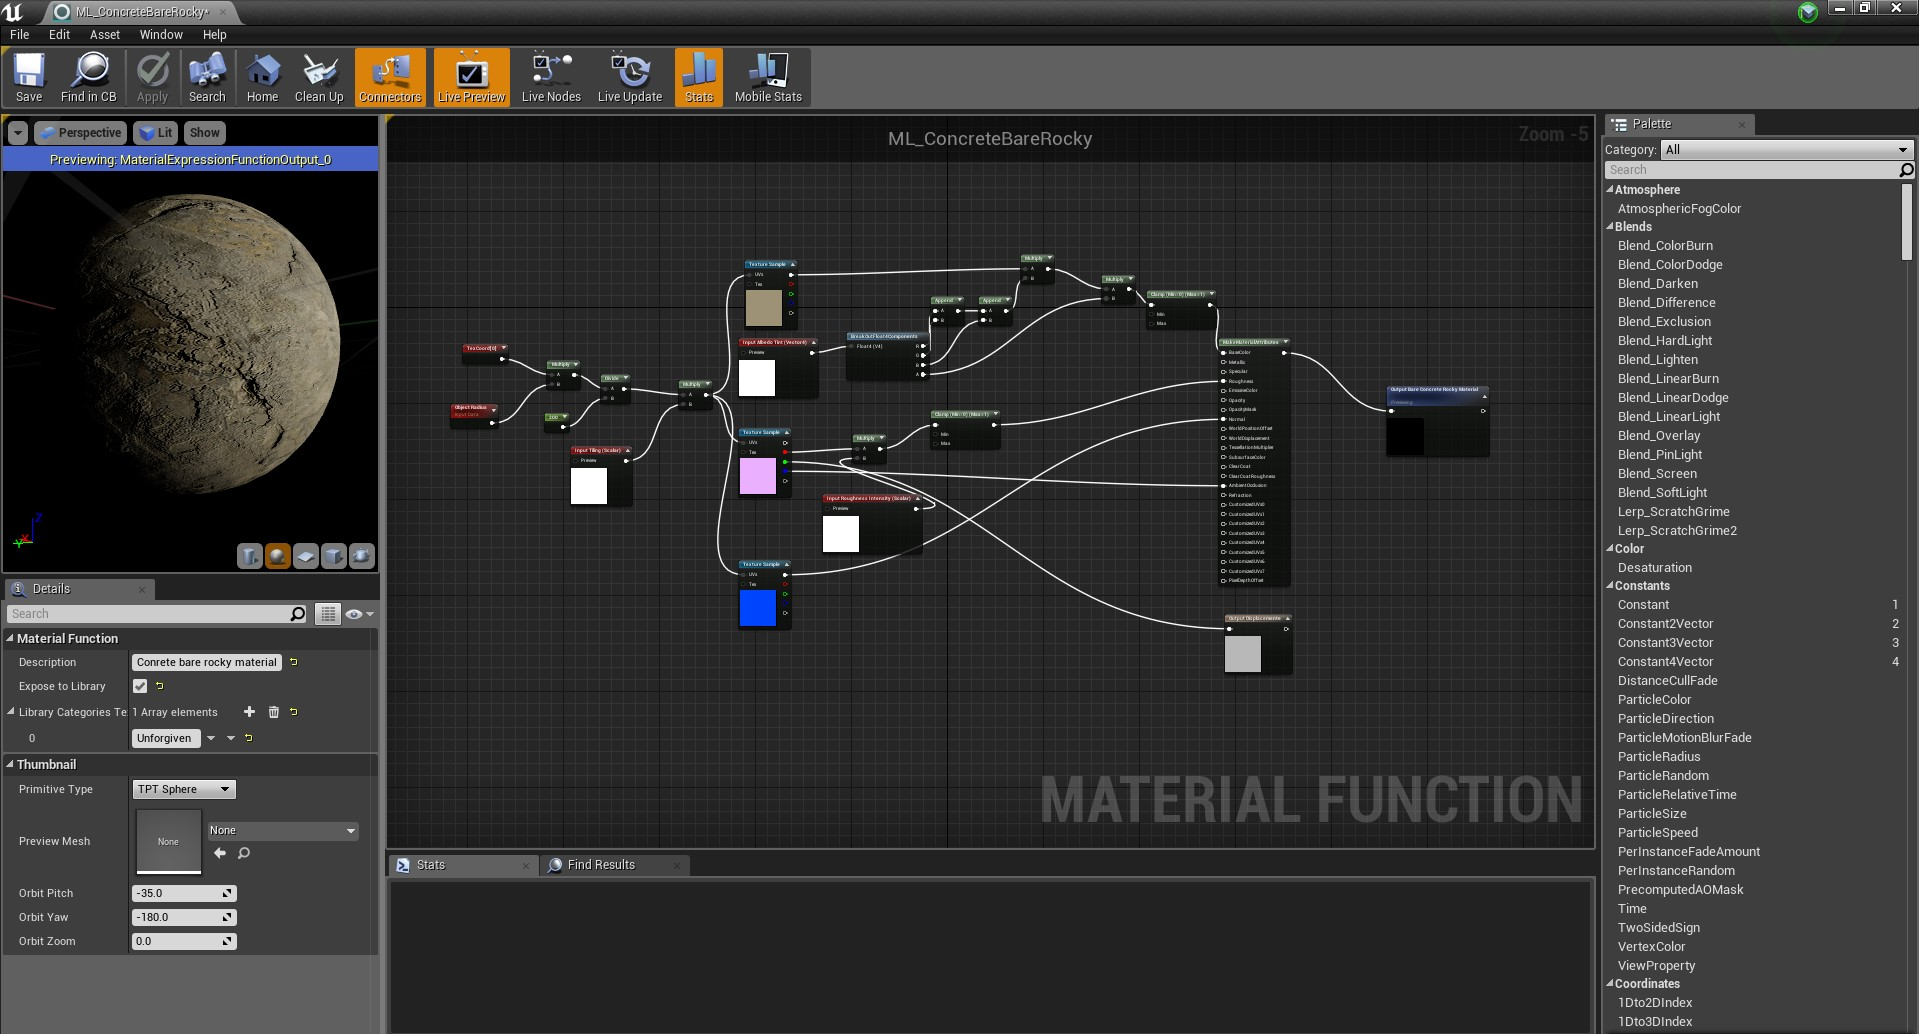 Overview of the material function